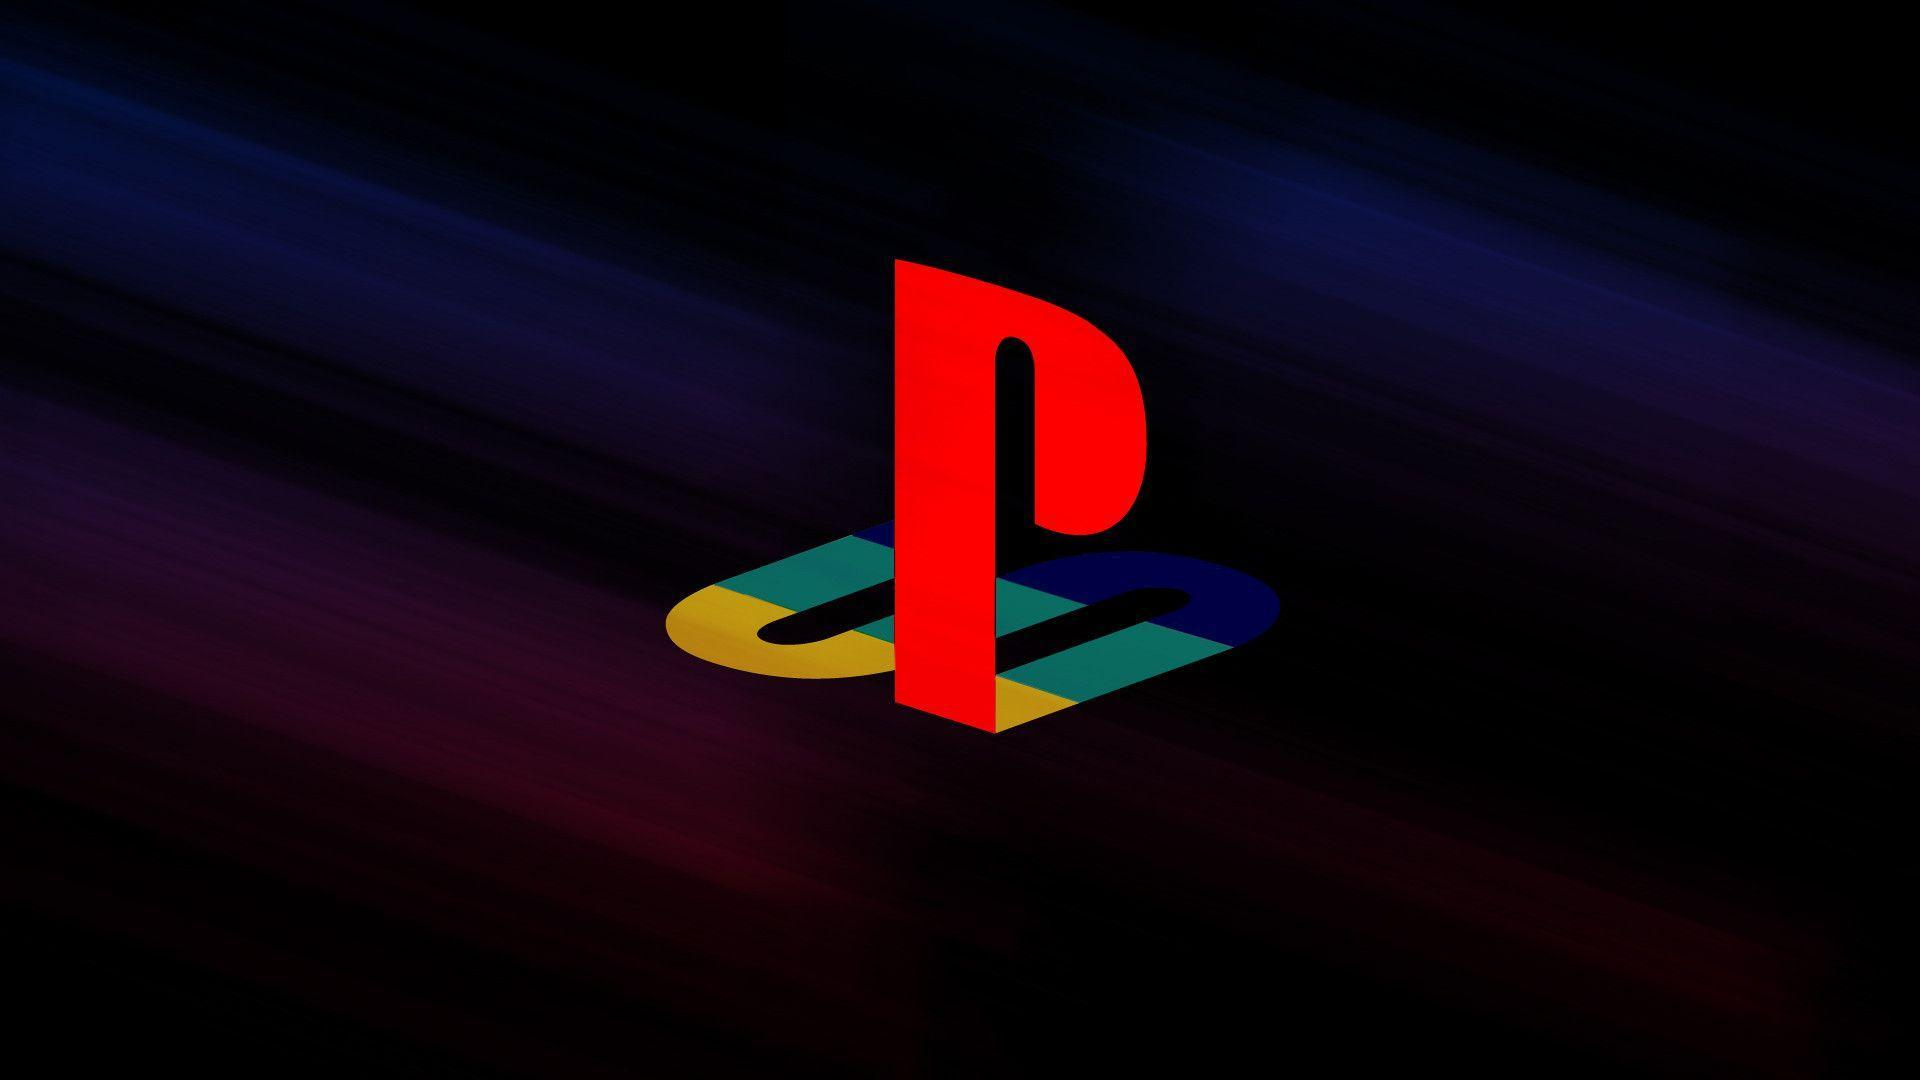 PS3 Wallpapers - Wallpaper Cave